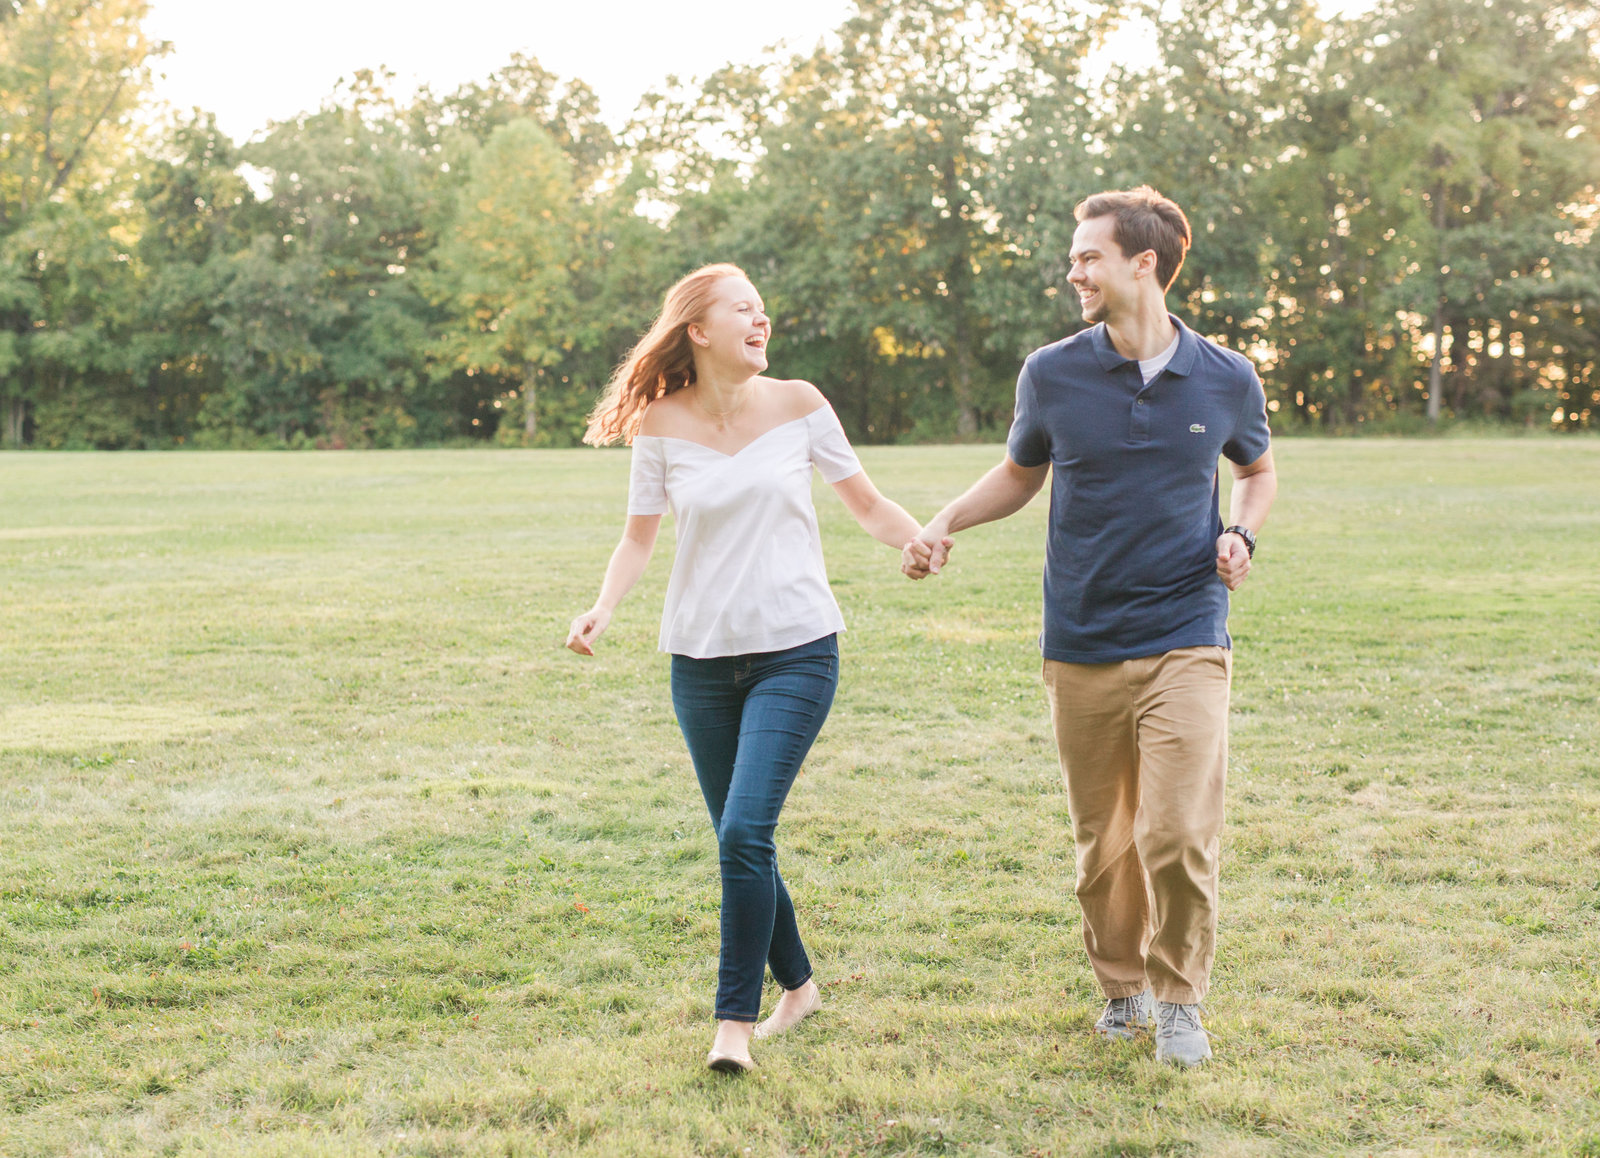 cuyahogo-valley-national-park-engagement-session-allison-ewing-photography-012-1